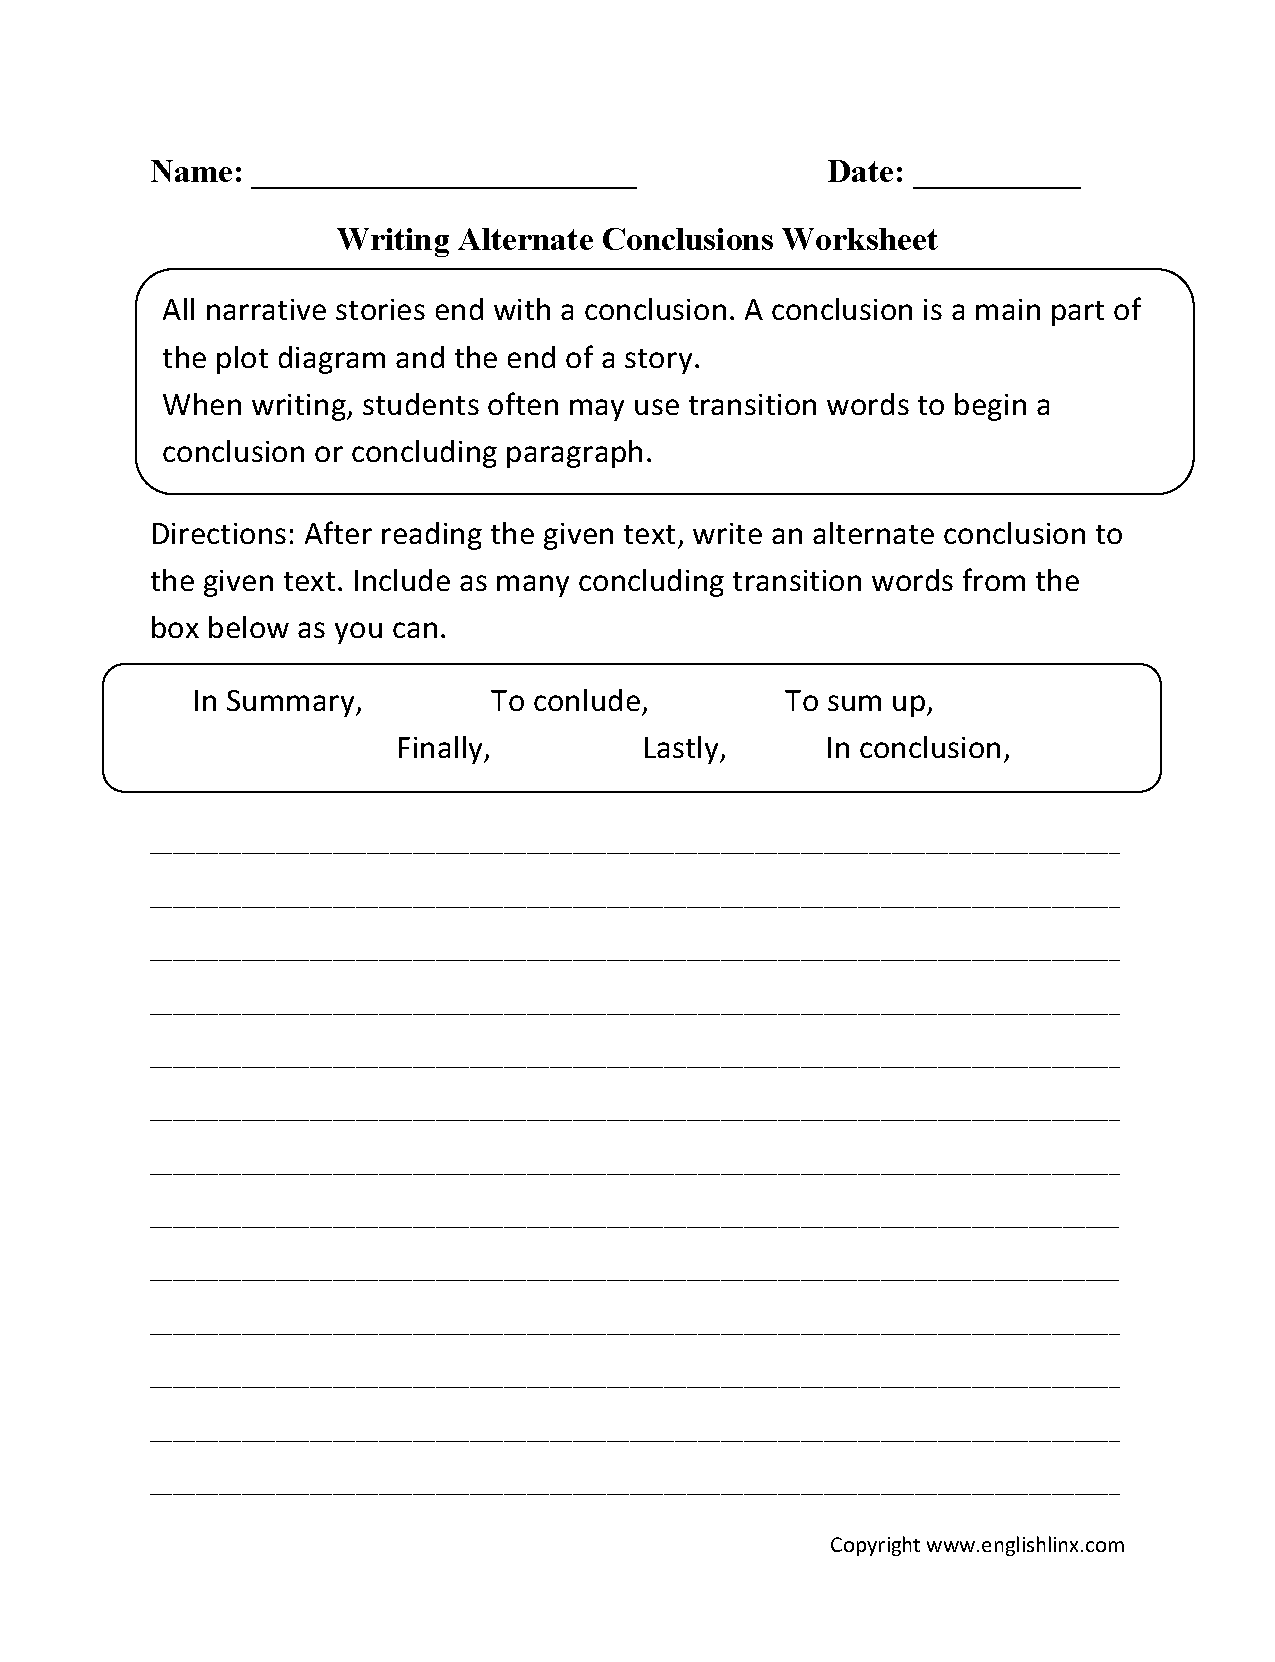 writing an argumentative essay conclusion Title length color rating : writing persuasive or argumentative essays - in persuasive or argumentative writing, we try to convince others to agree with our facts, share our values, accept our argument and conclusions, and adopt our way of thinking.